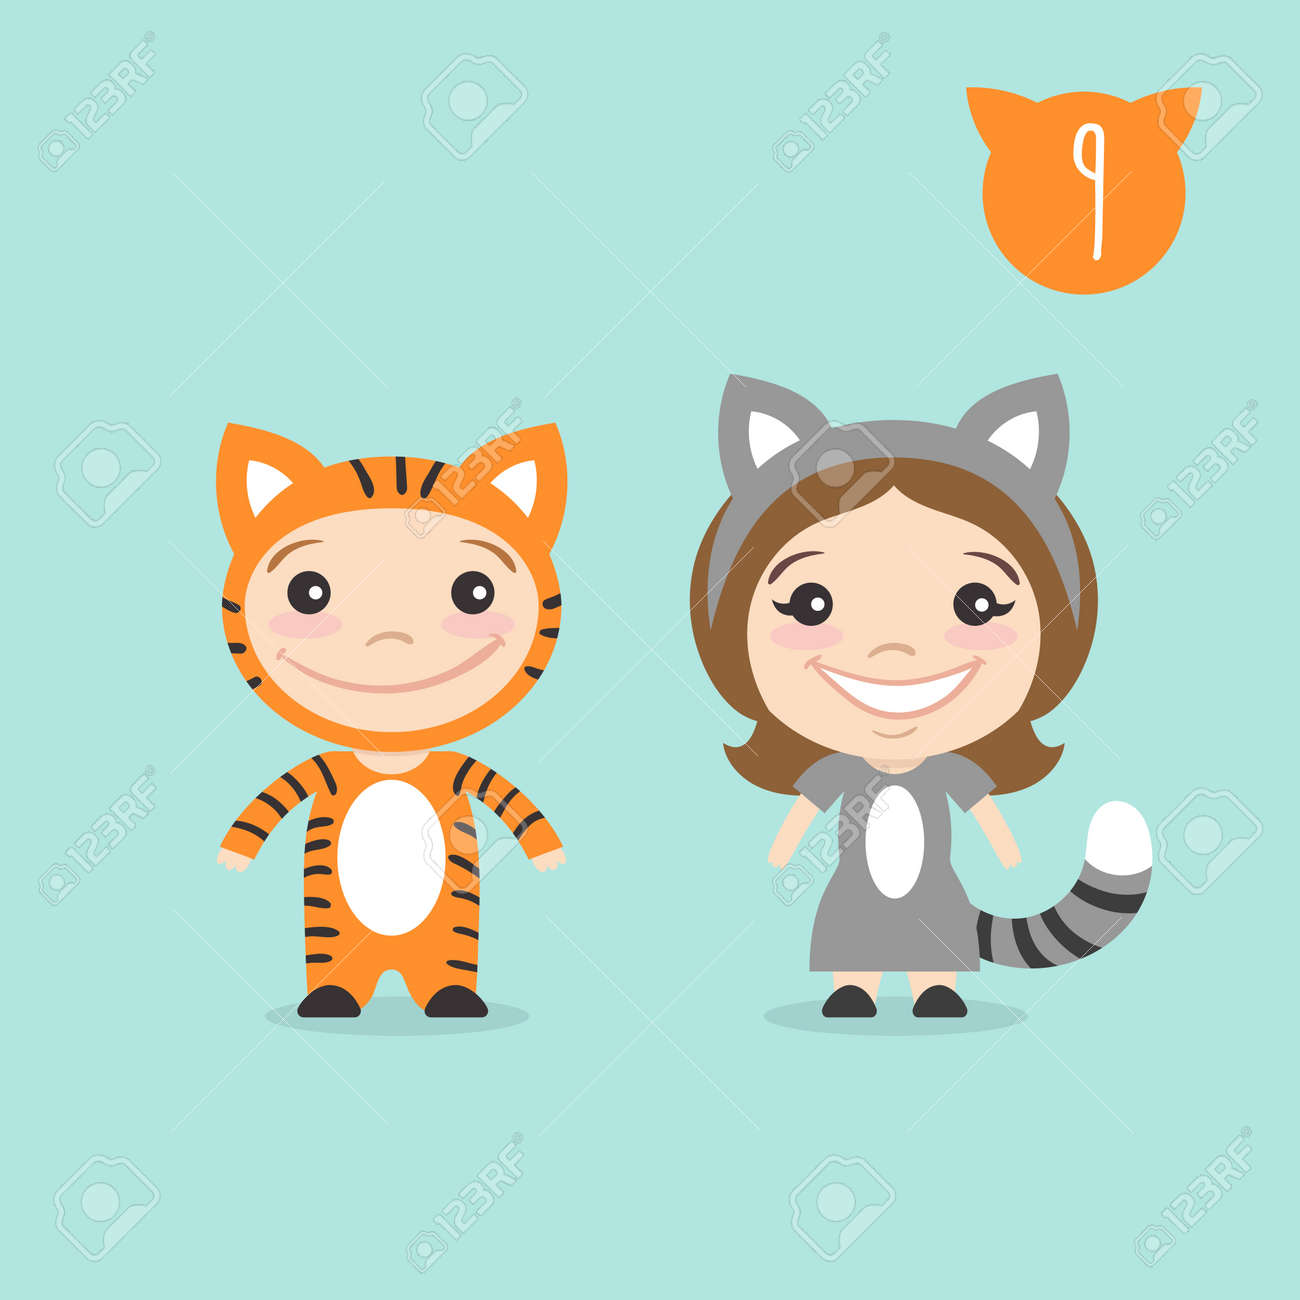 Vector - Vector illustration of two happy cute kids characters. Boy in tiger costume and a girl in cat costume.  sc 1 st  123RF.com & Vector Illustration Of Two Happy Cute Kids Characters. Boy In ...